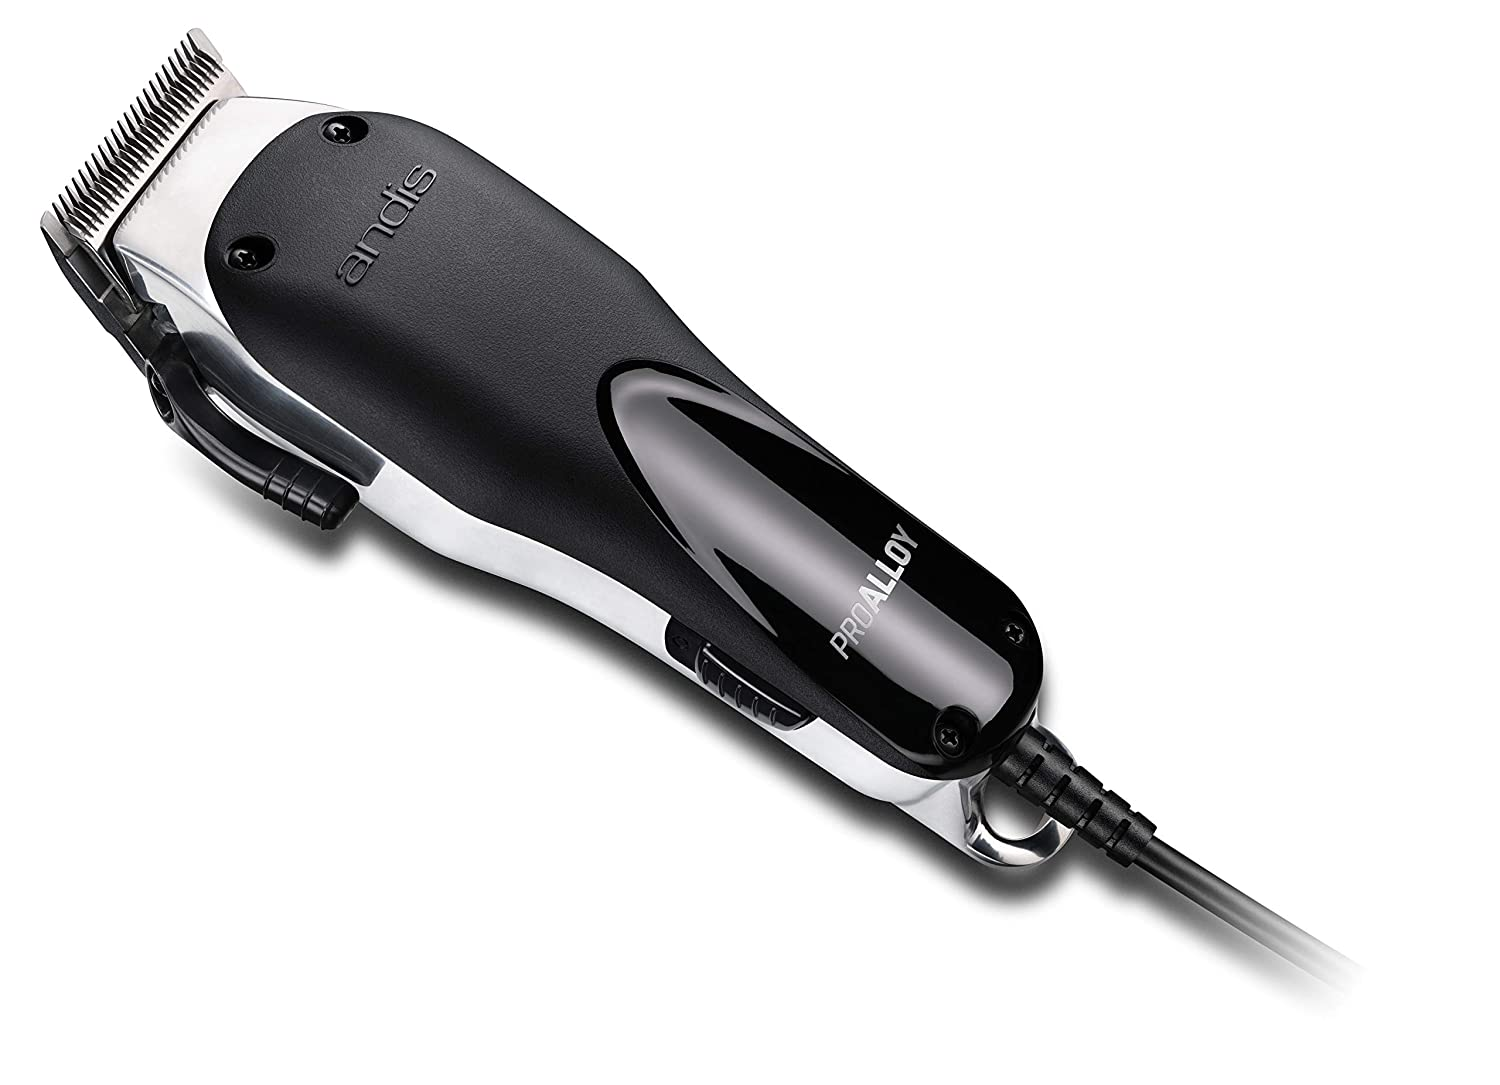 Andis 69100 ProAlloy Adjustable Blade Clipper, Whisper Quiet Performance, Extreme Temperature Reduction, Black/Chrome